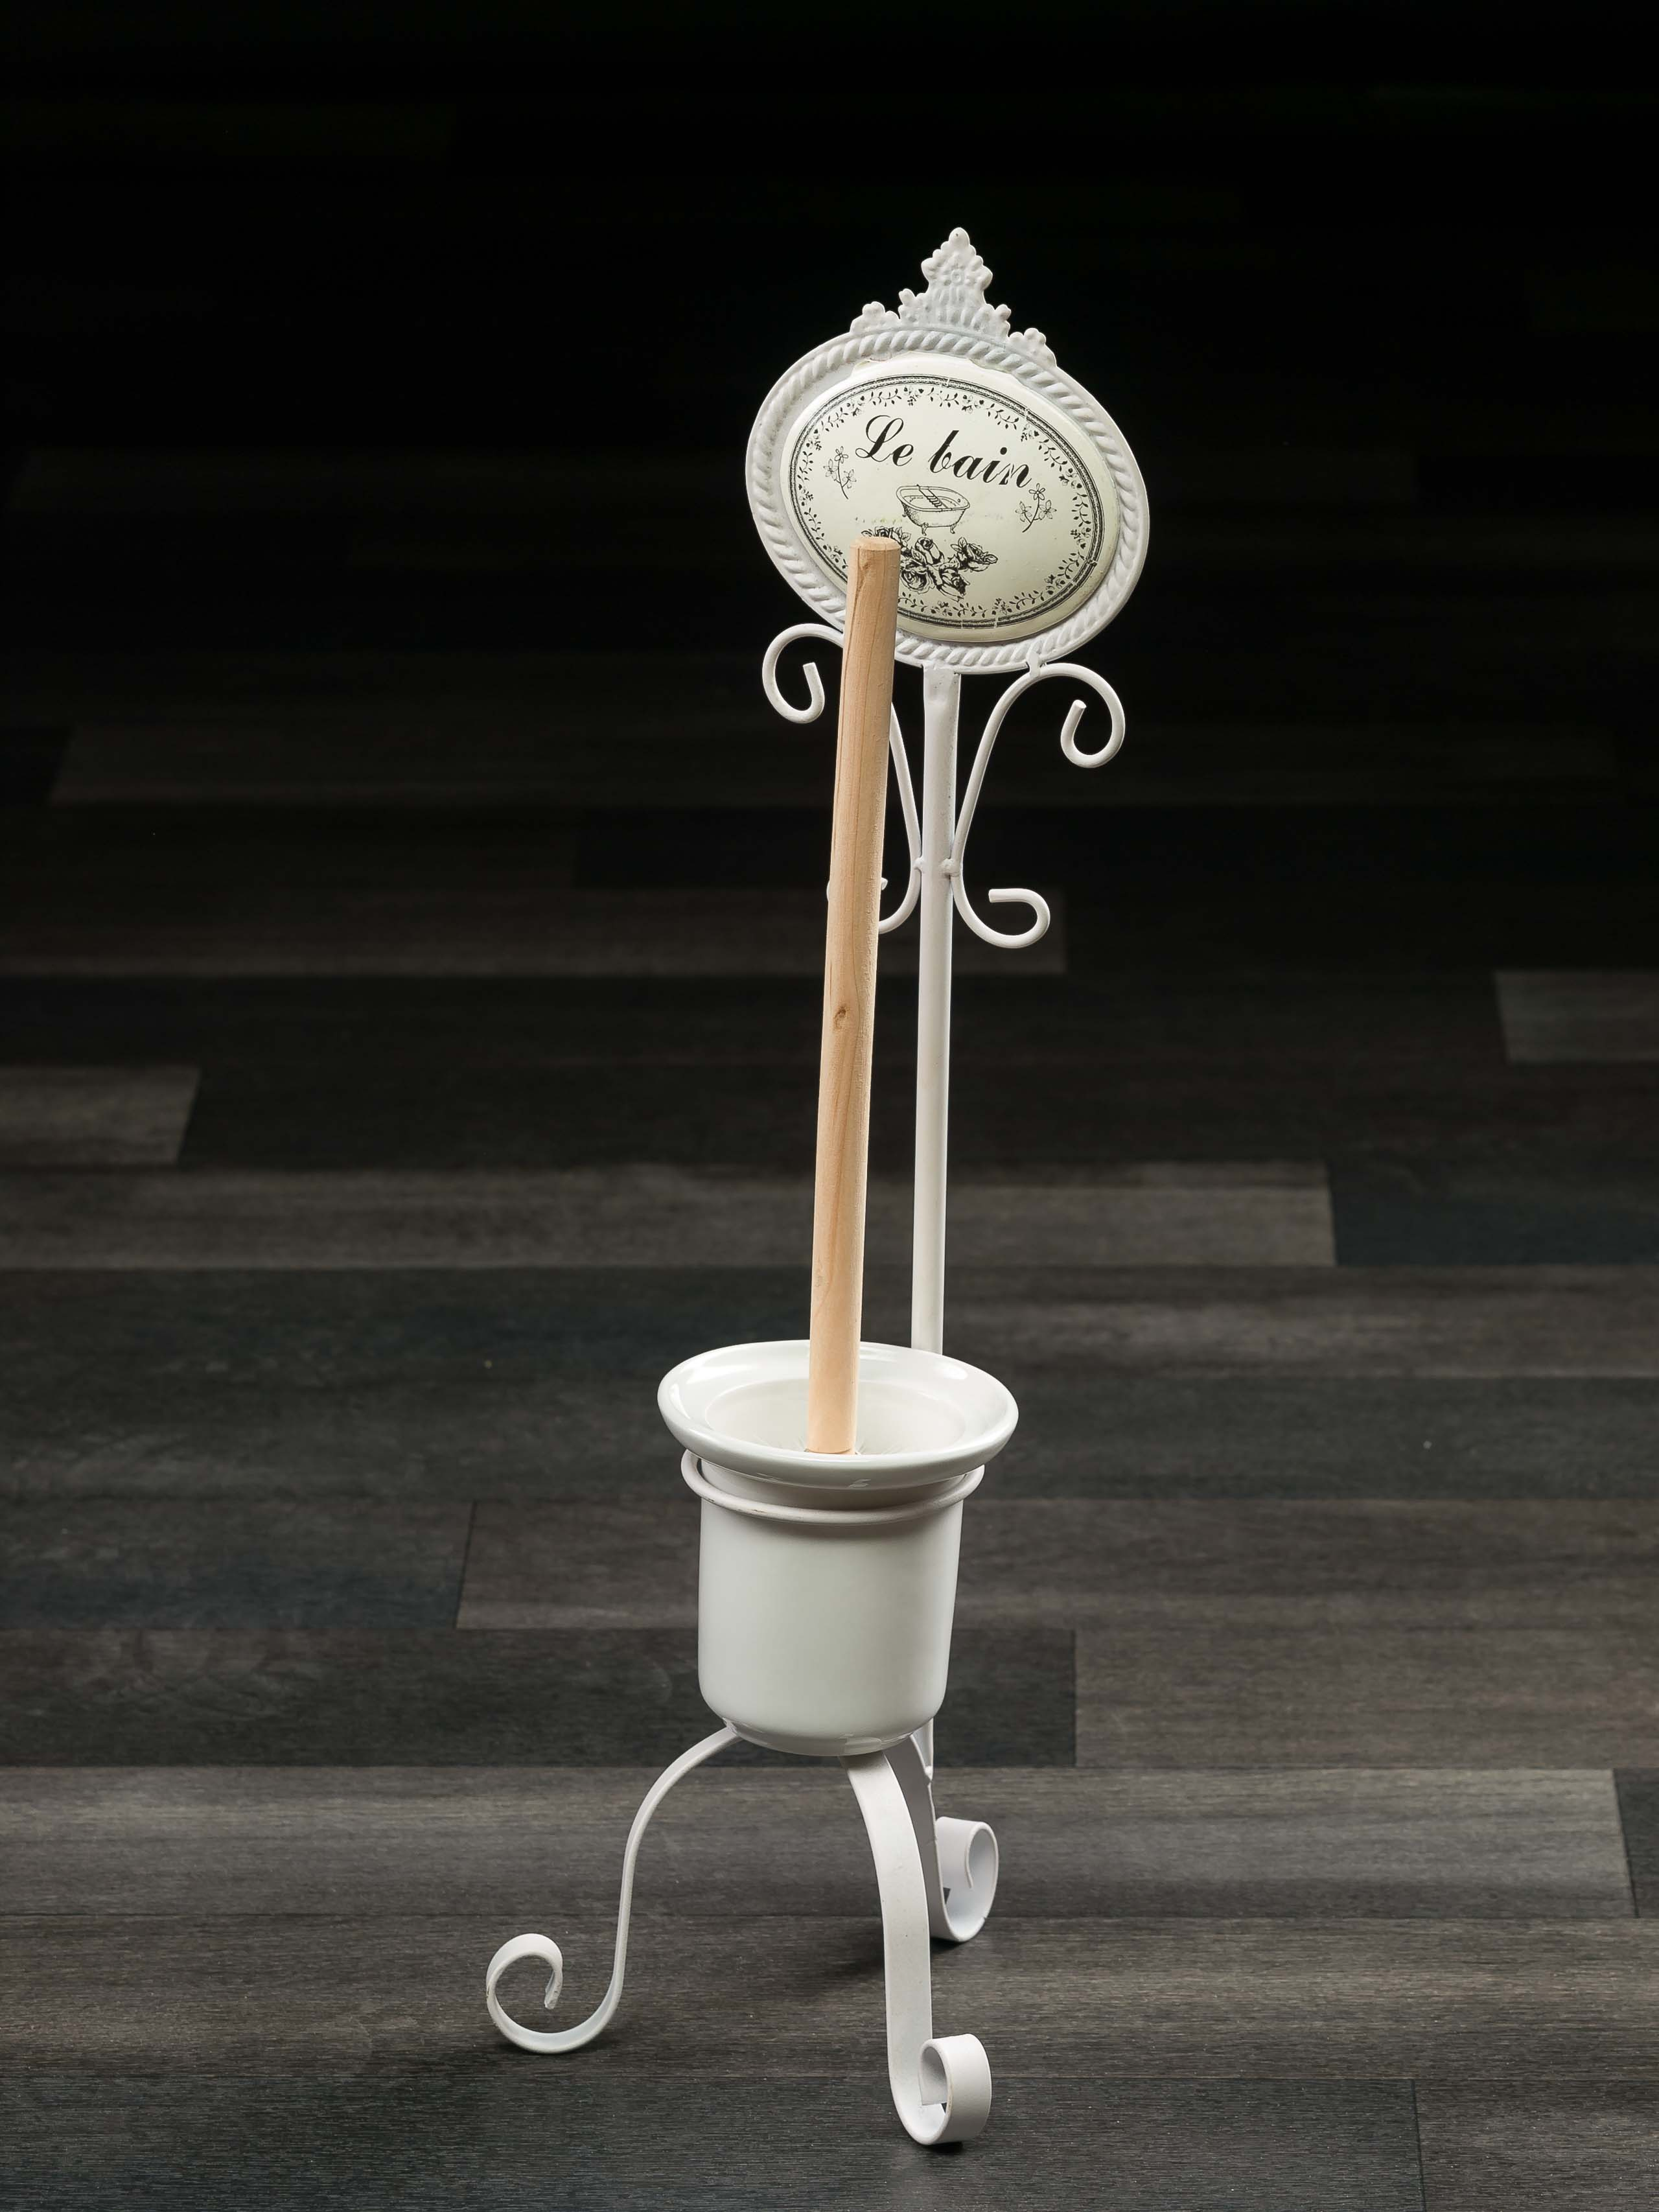 Toilettenbürstenhalter Toilet Brush Set In Antique Style Toilet Brush Toilet Brush Holder Bathroom